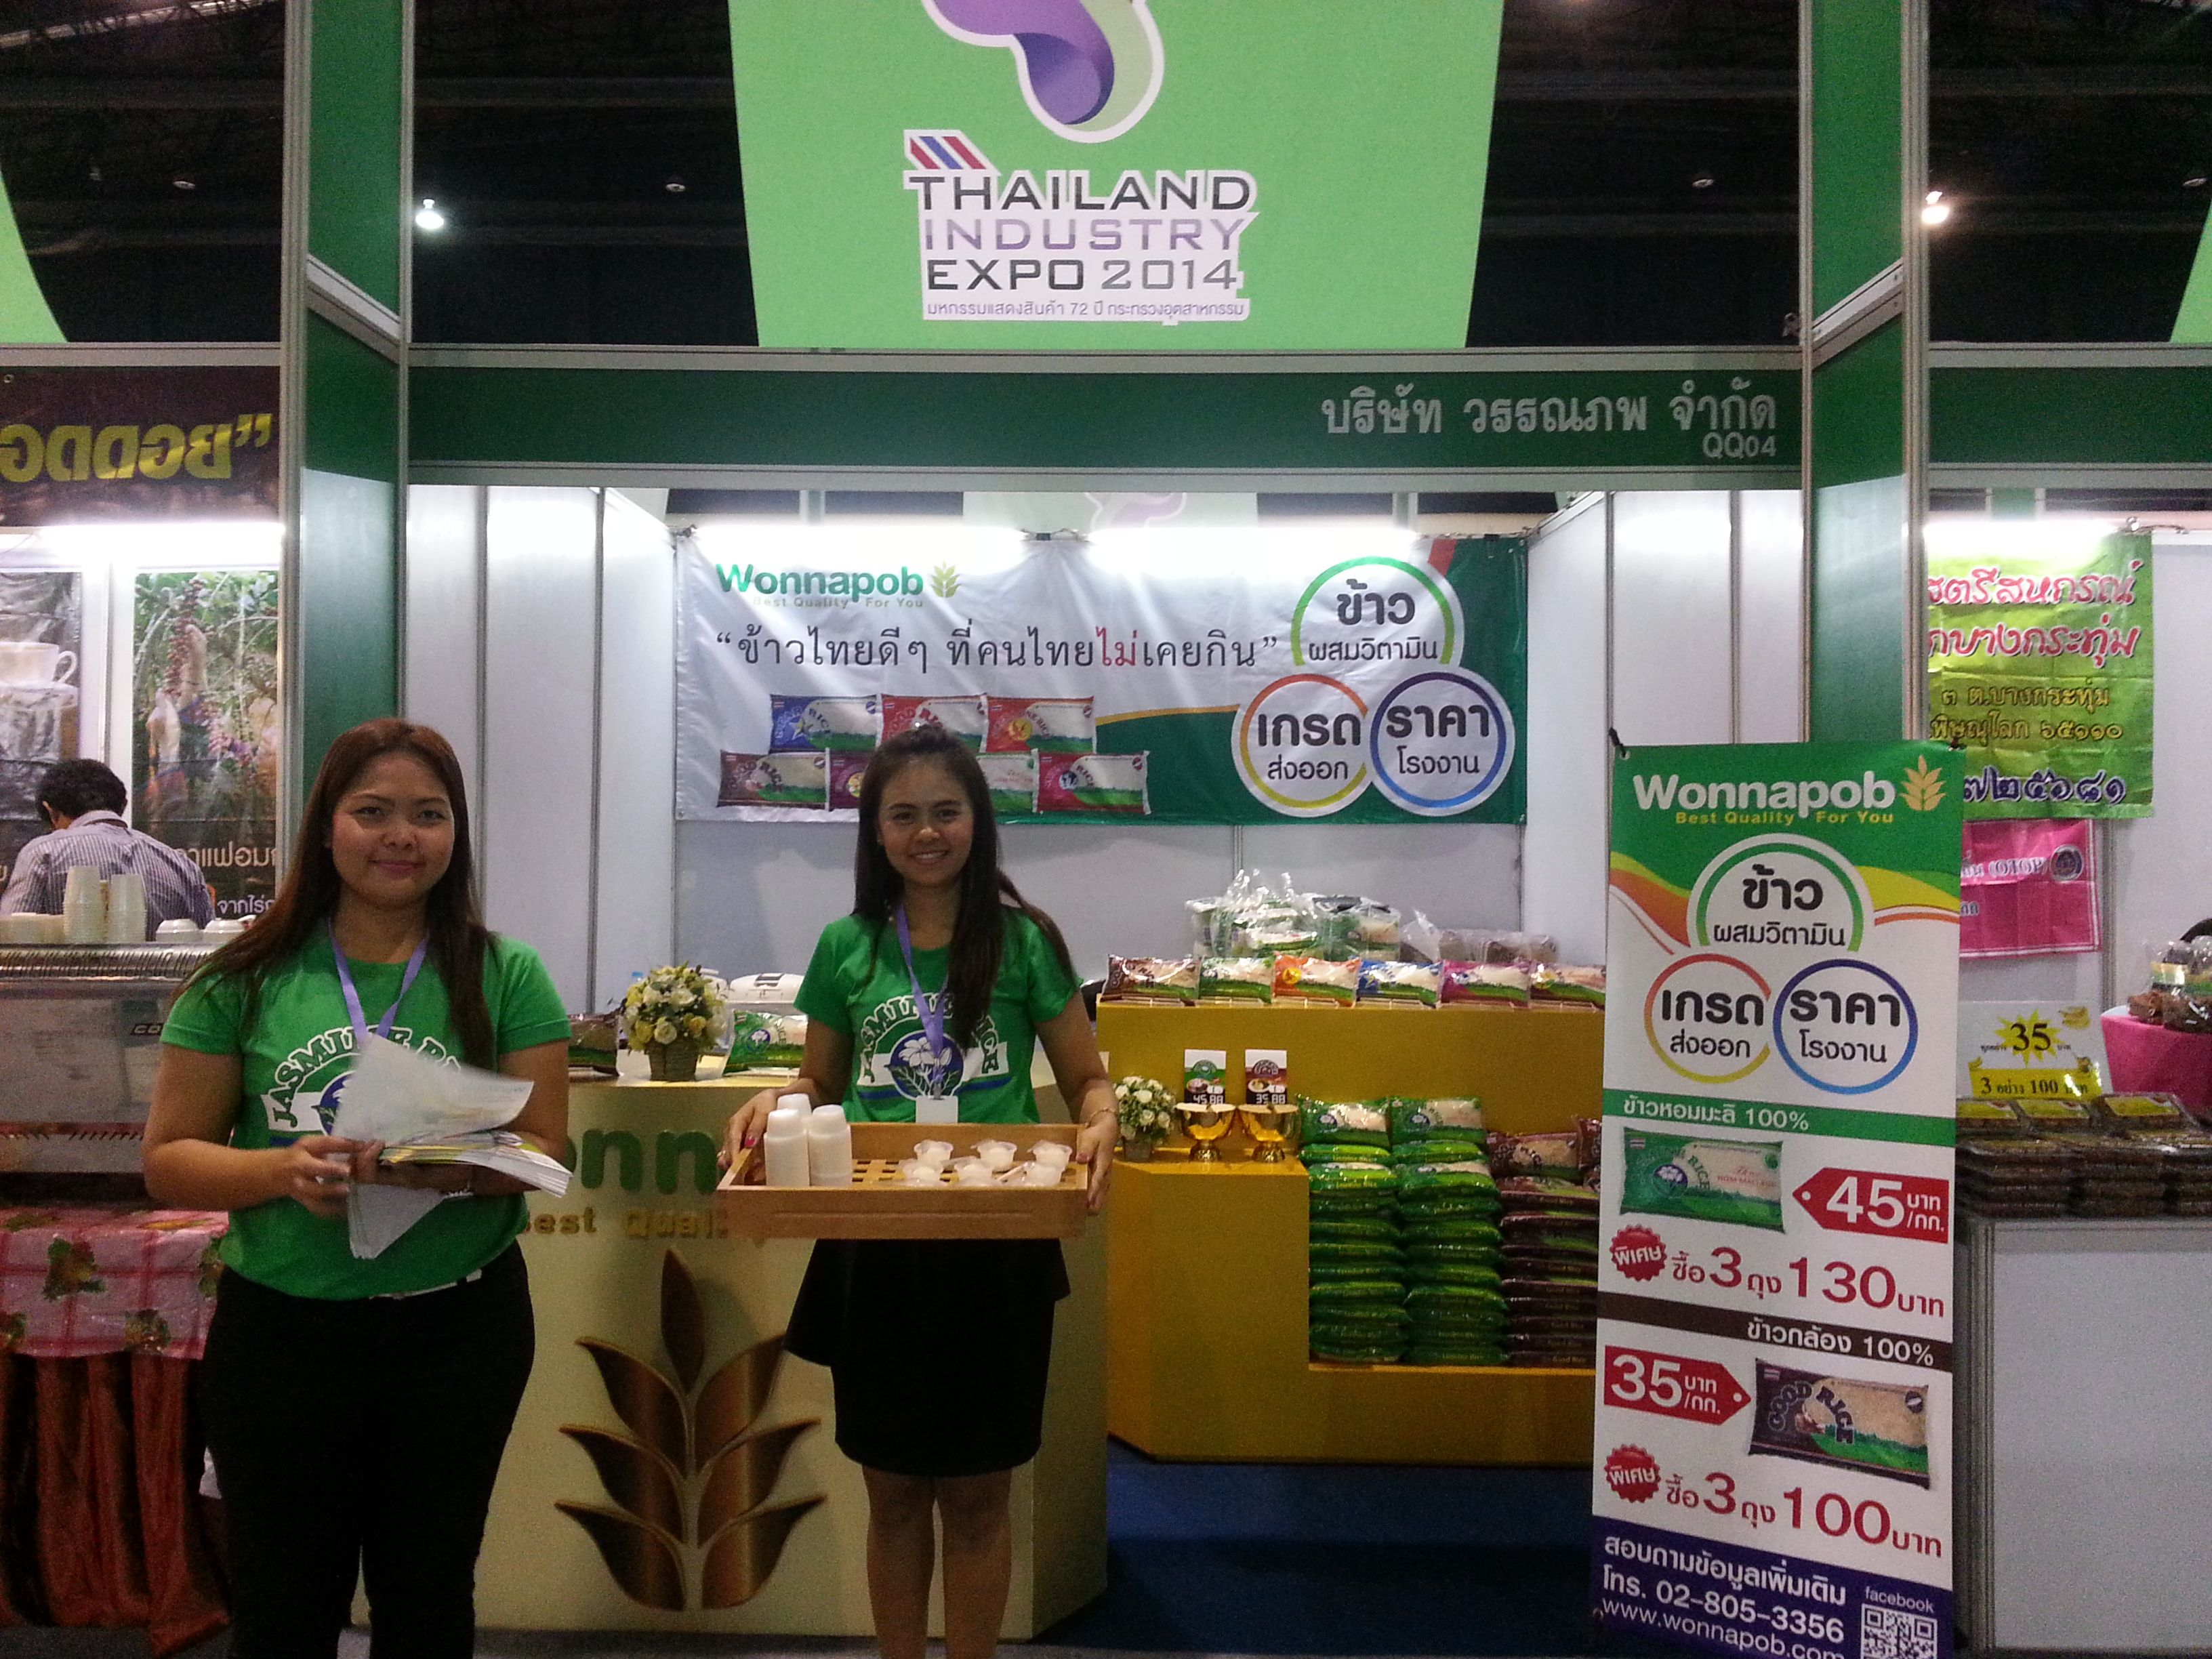 Thailand Industry Expo 2014  26-31 Aug 2014